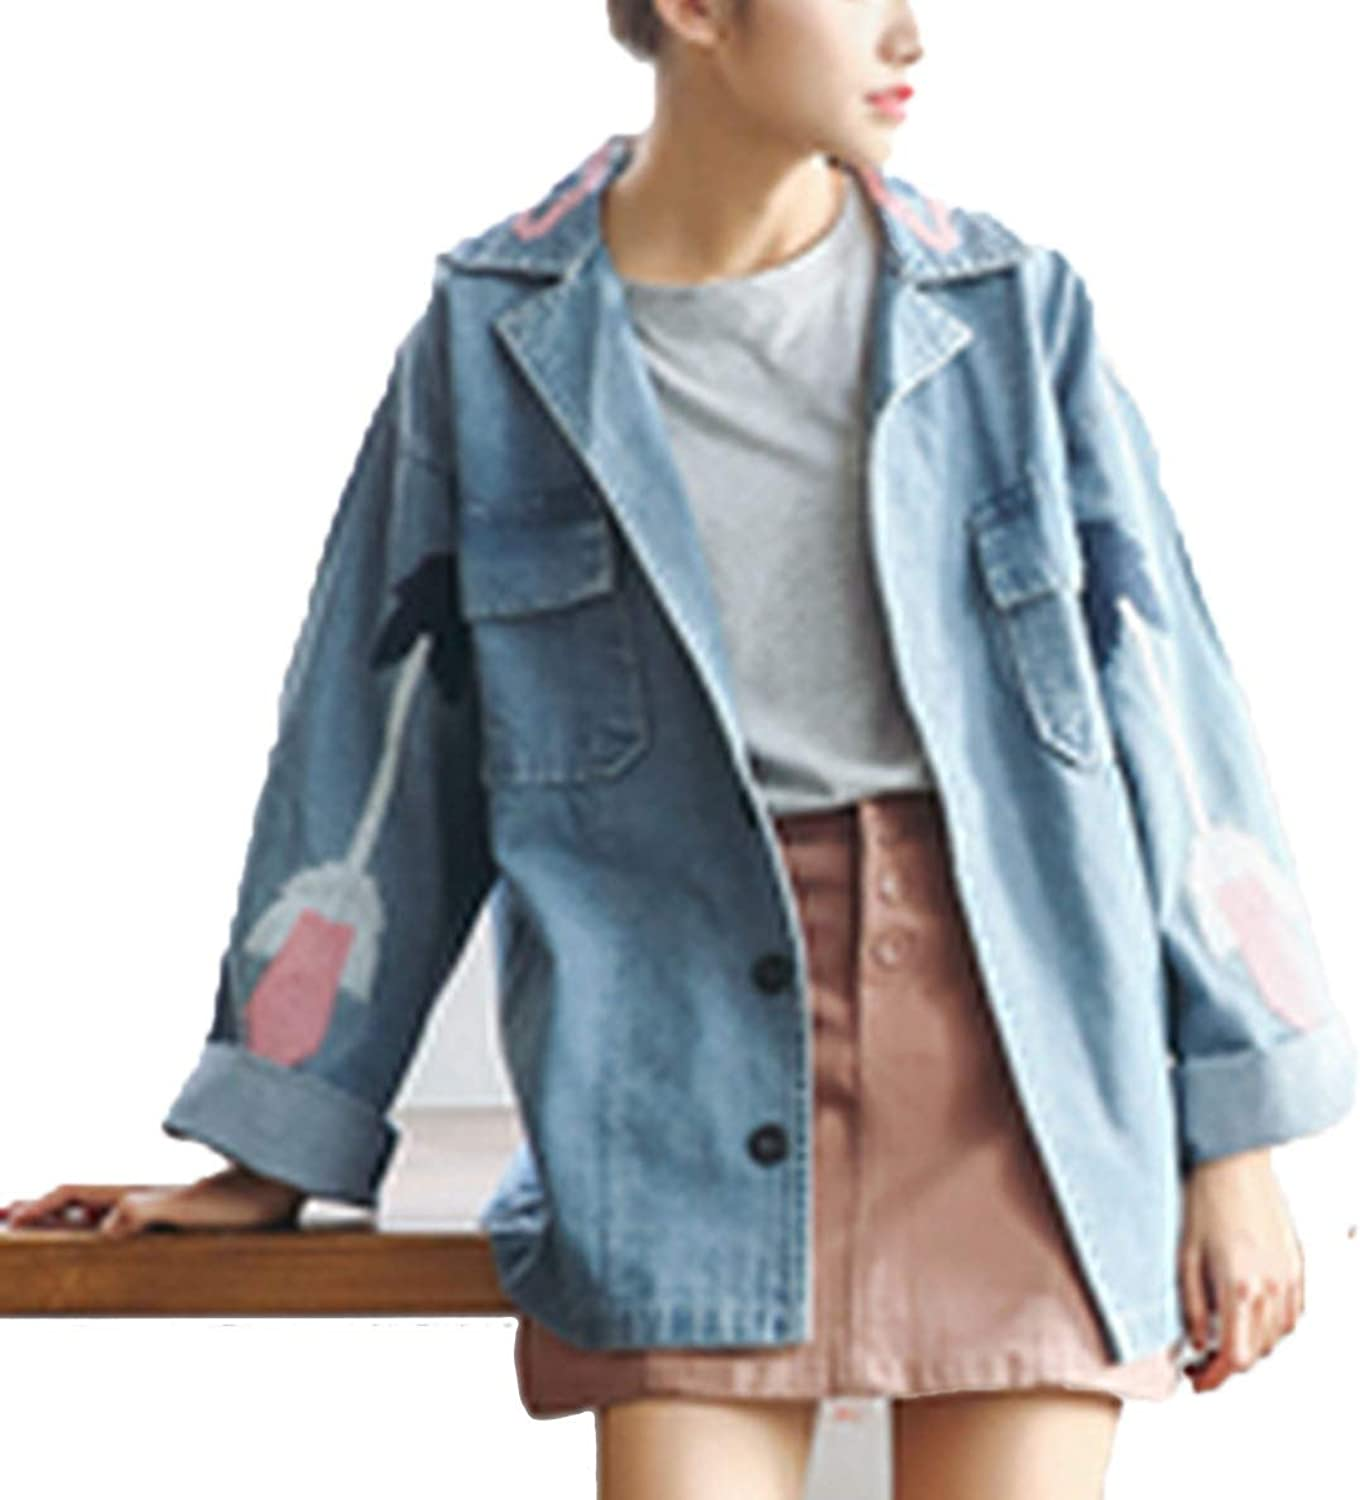 2019 Spring Autumn Denim Jacket Embroidery Women Jeans Jacket Harajuku Female Basic Coat Loose Casual Denim Coat WQ116,Blue,M